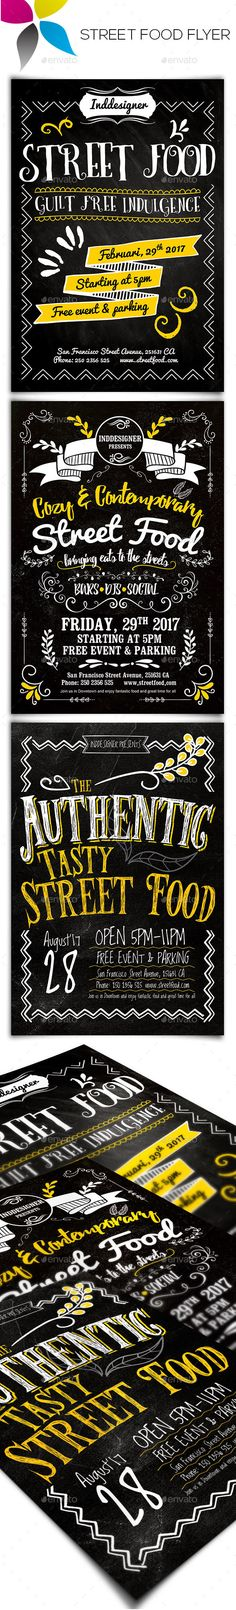 Street Food Flyer  - PSD Template • Only available here ➝ http://graphicriver.net/item/street-food-flyer/14861432?ref=pxcr